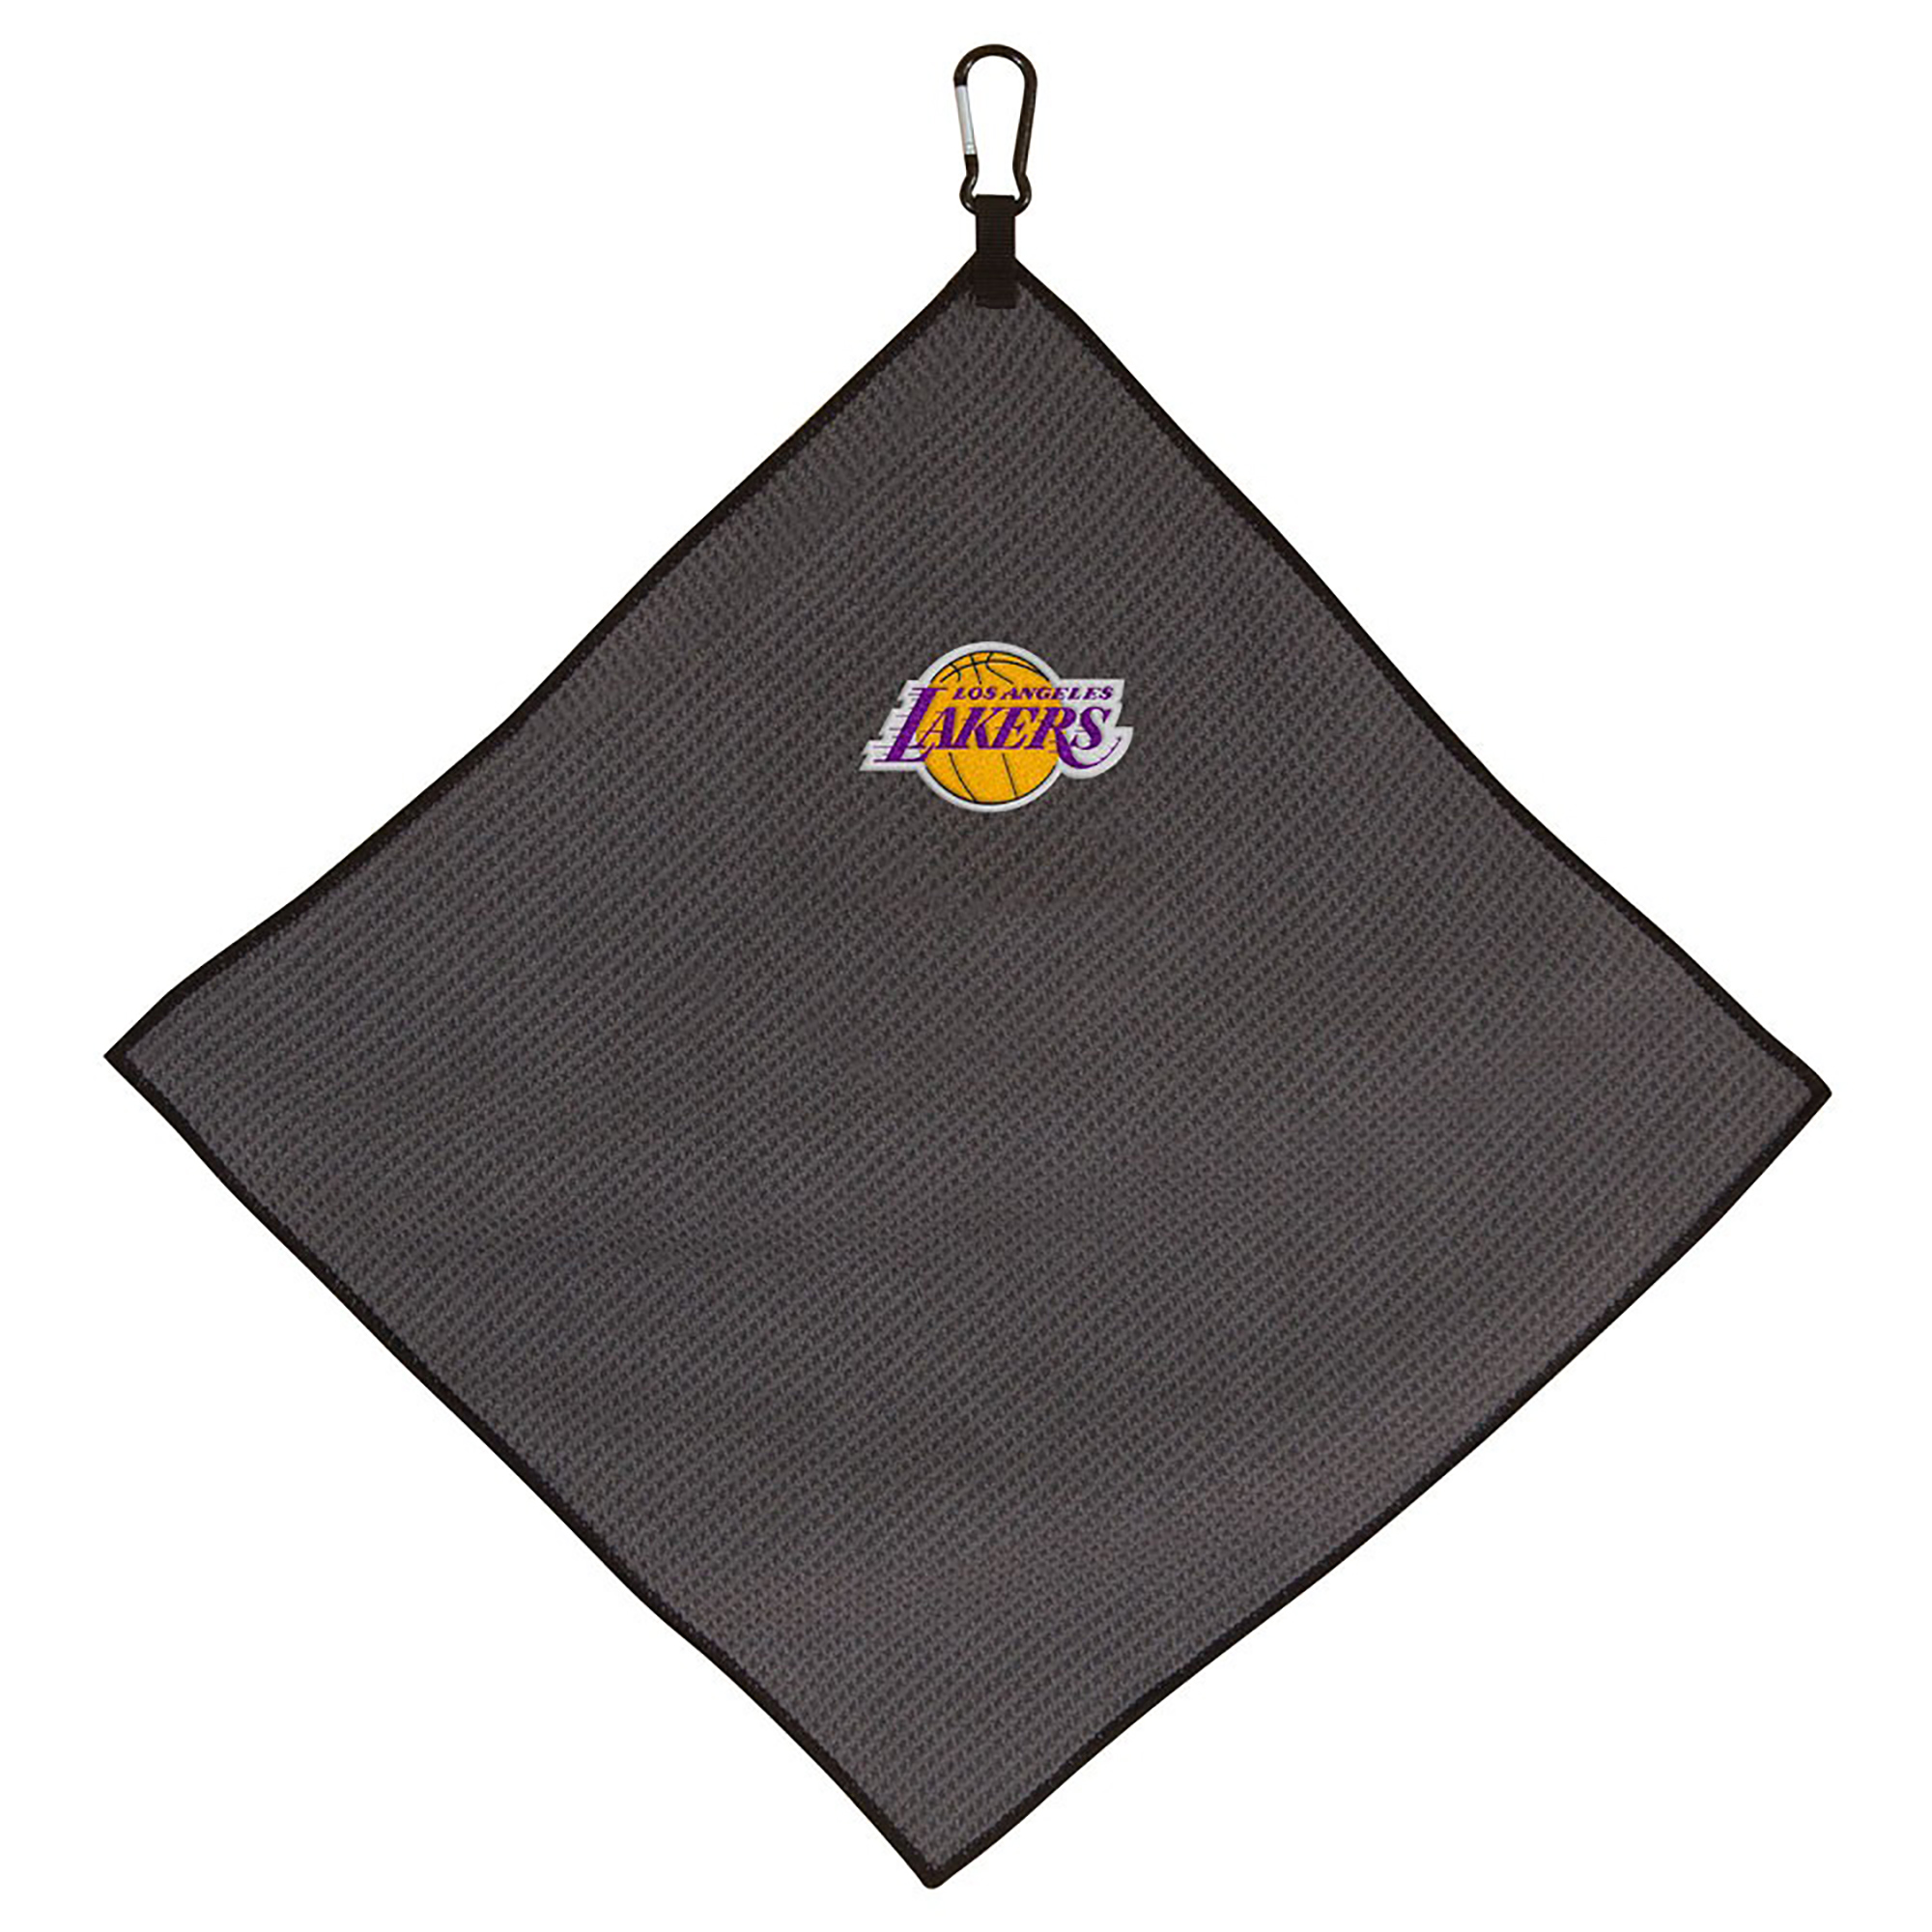 "Los Angeles Lakers 15"" x 15"" Microfiber Golf Towel - No Size"